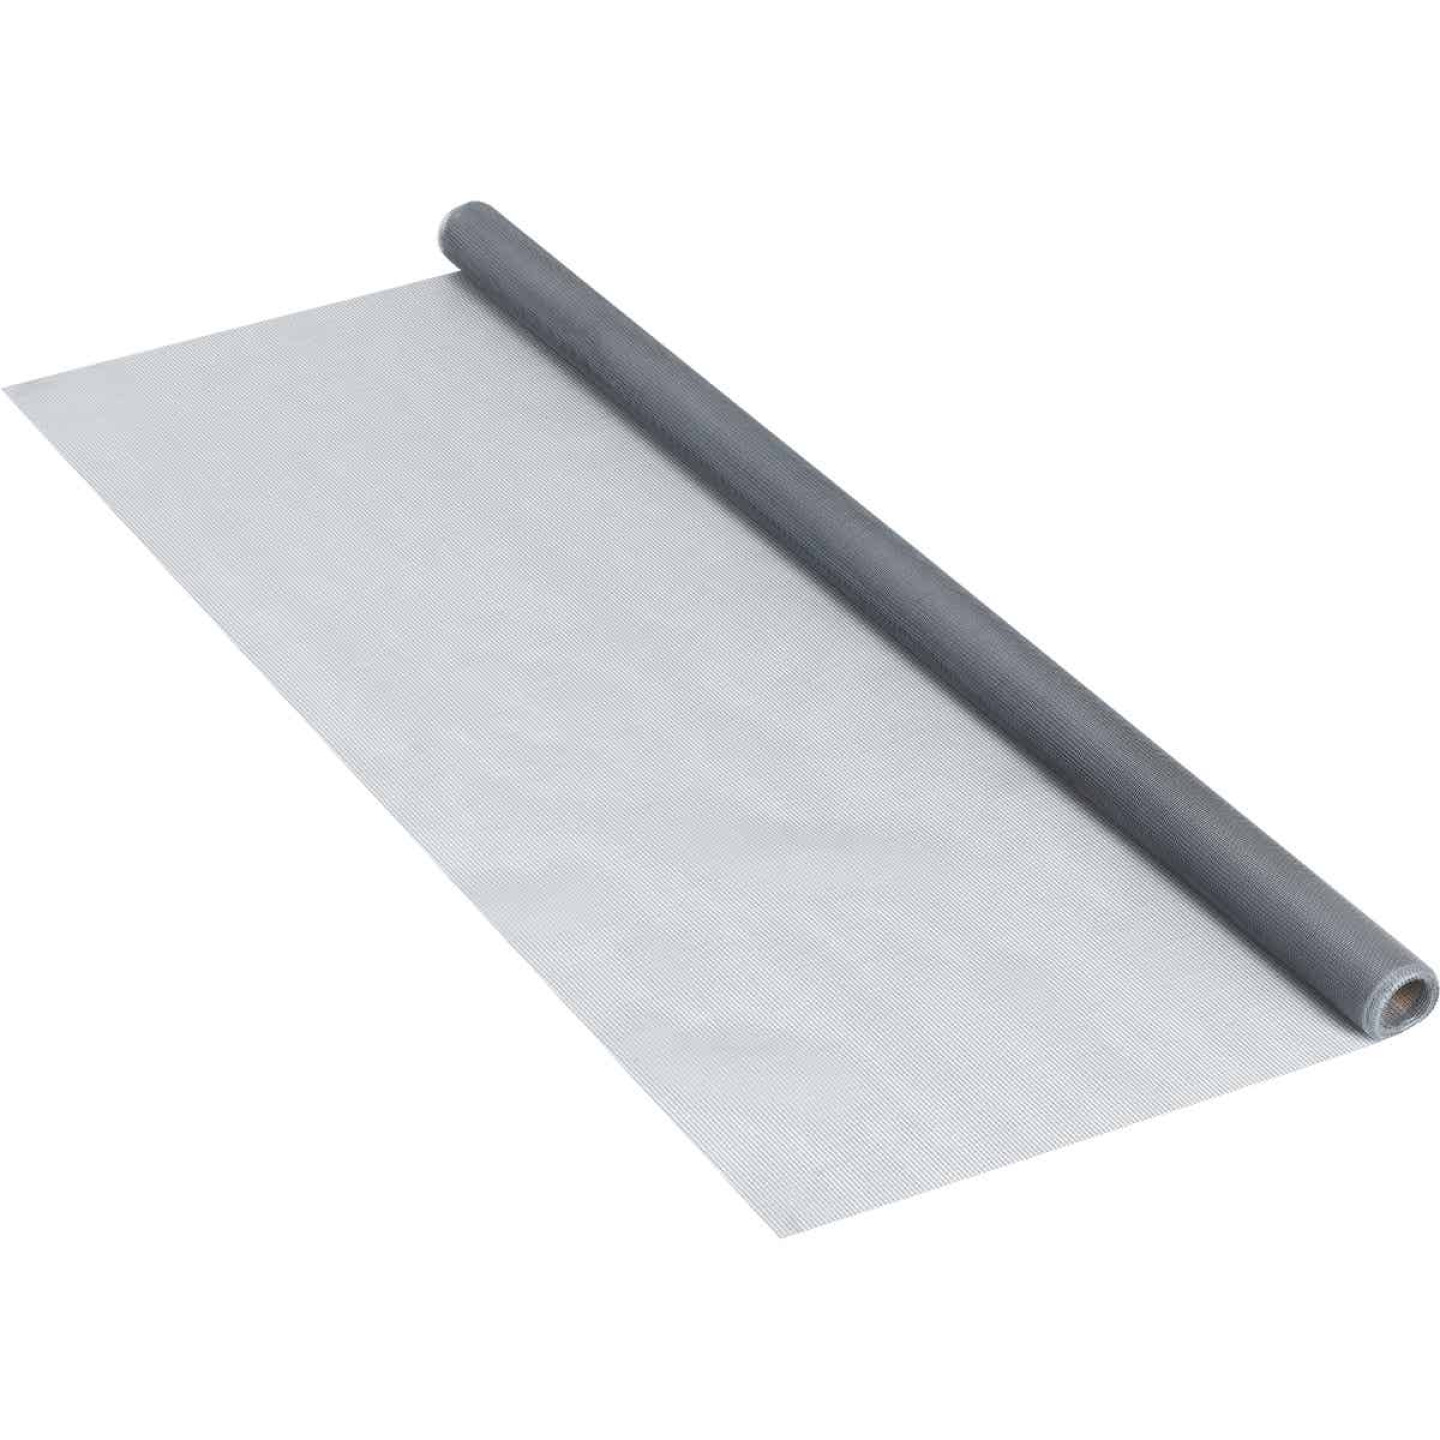 Phifer 30 In. x 84 In. Gray Fiberglass Screen Cloth Ready Rolls Image 3